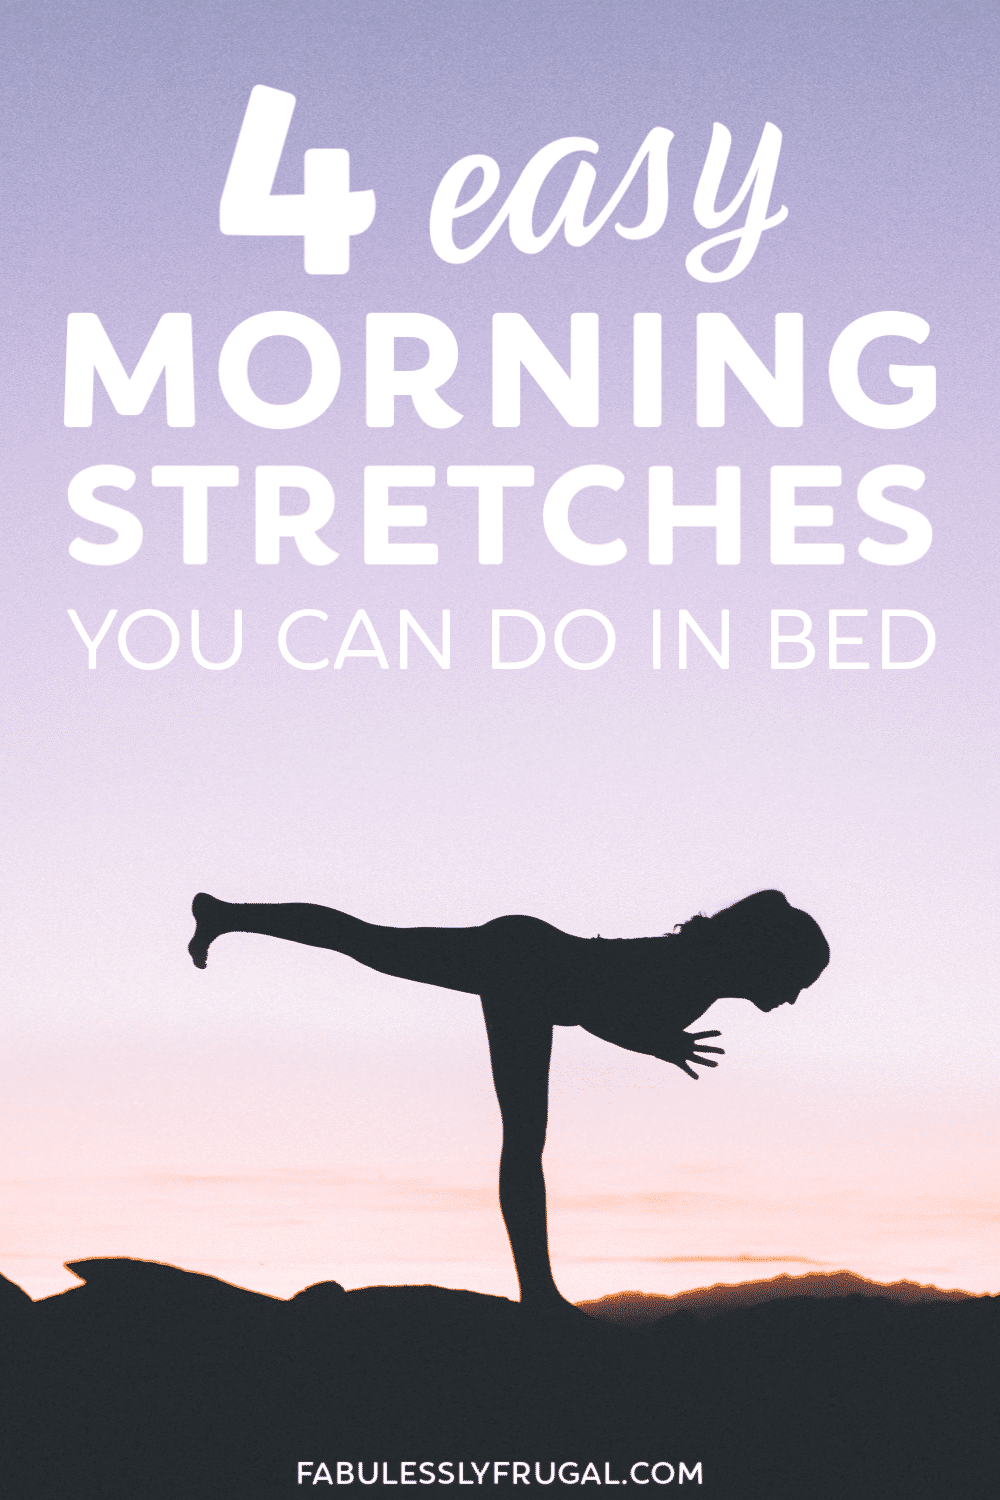 Morning stretches in bed